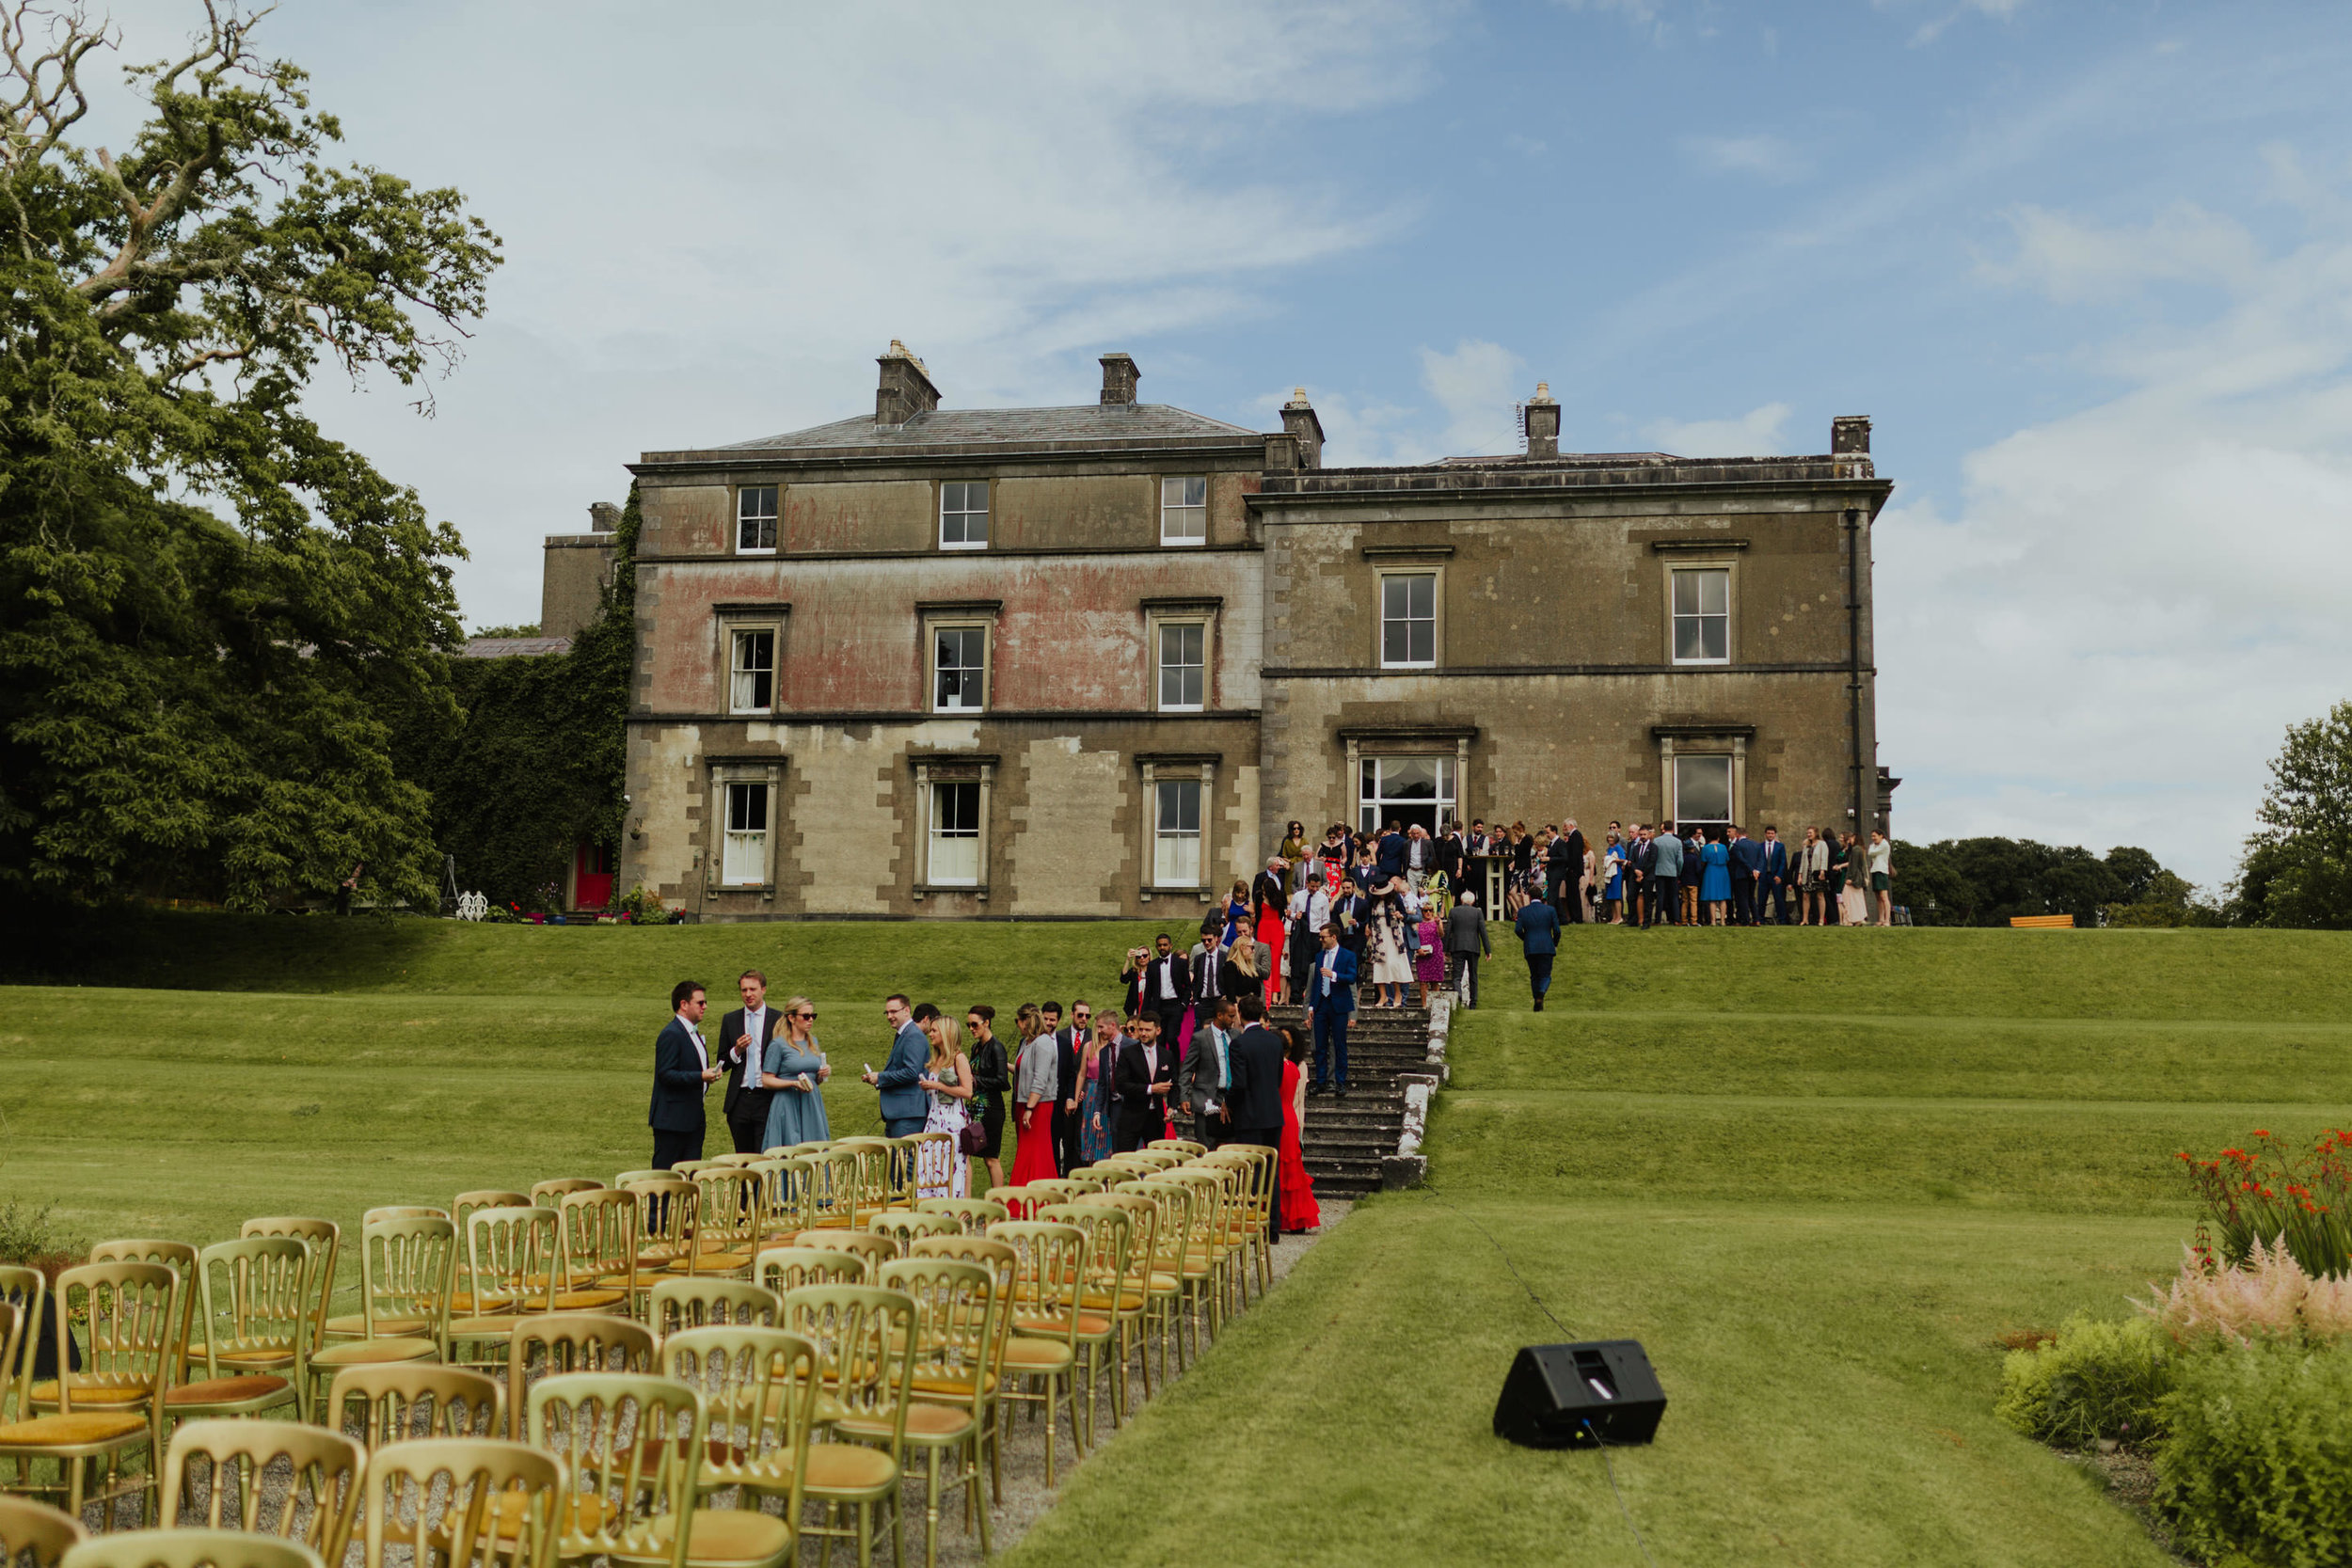 a+s_temple_house_sligo_wedding_livia_figueiredo_452.jpg